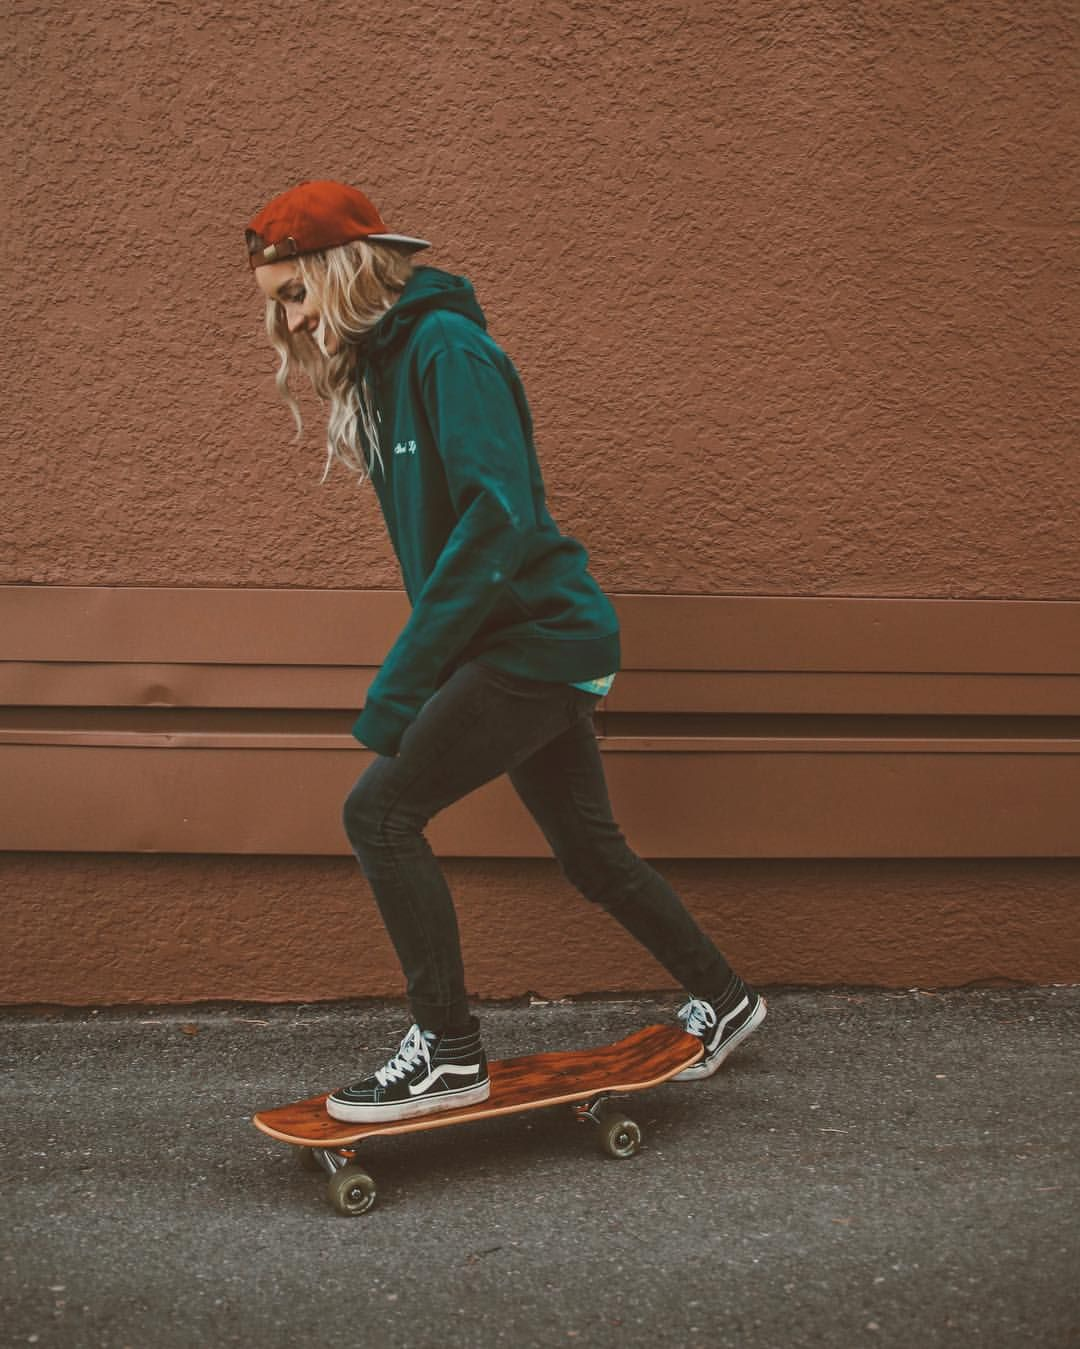 7 726 Likes 38 Comments Hailey Marie Dreaming Outloud On Instagram Hold Up There S Only Like 3 We Skater Girl Outfits Skater Outfits Skater Girl Style